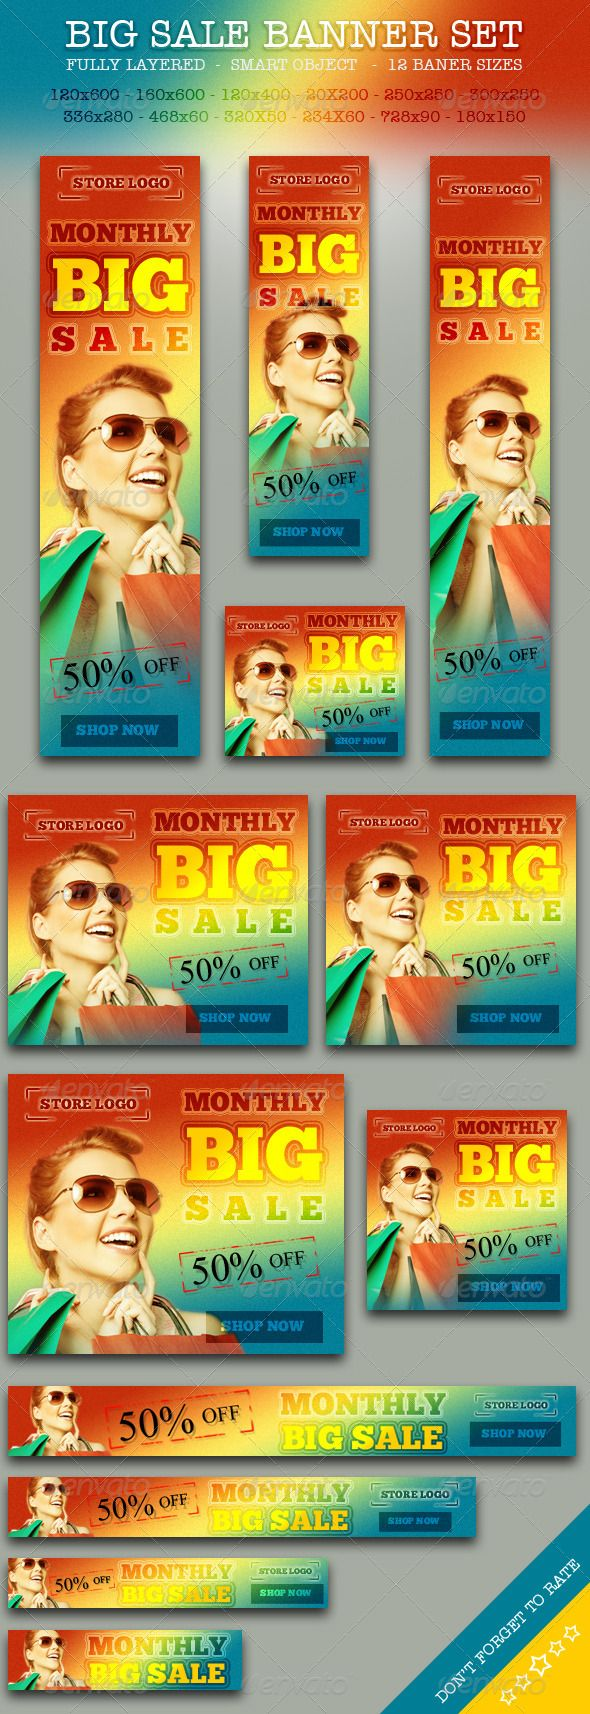 BIG Sale Promotion Online Store Banner ad Set  #GraphicRiver         BIG Sale Promotion Banner ad Set for Online Store. Support for Google Adword Desktop. Total 12 PSD files in pack. Dont forget to give five stars if you like this item.   Total 12 Web Banner ad Sizes:   skyscraper 120×600   skyscraper 160X600   small skyscraper 120X400  half banner 234X60  full banner 468X60  leaderboard 728X90  mobile leaderboard 320X50  square 336X280  square 300X250  square 250X250   small square 200X200…